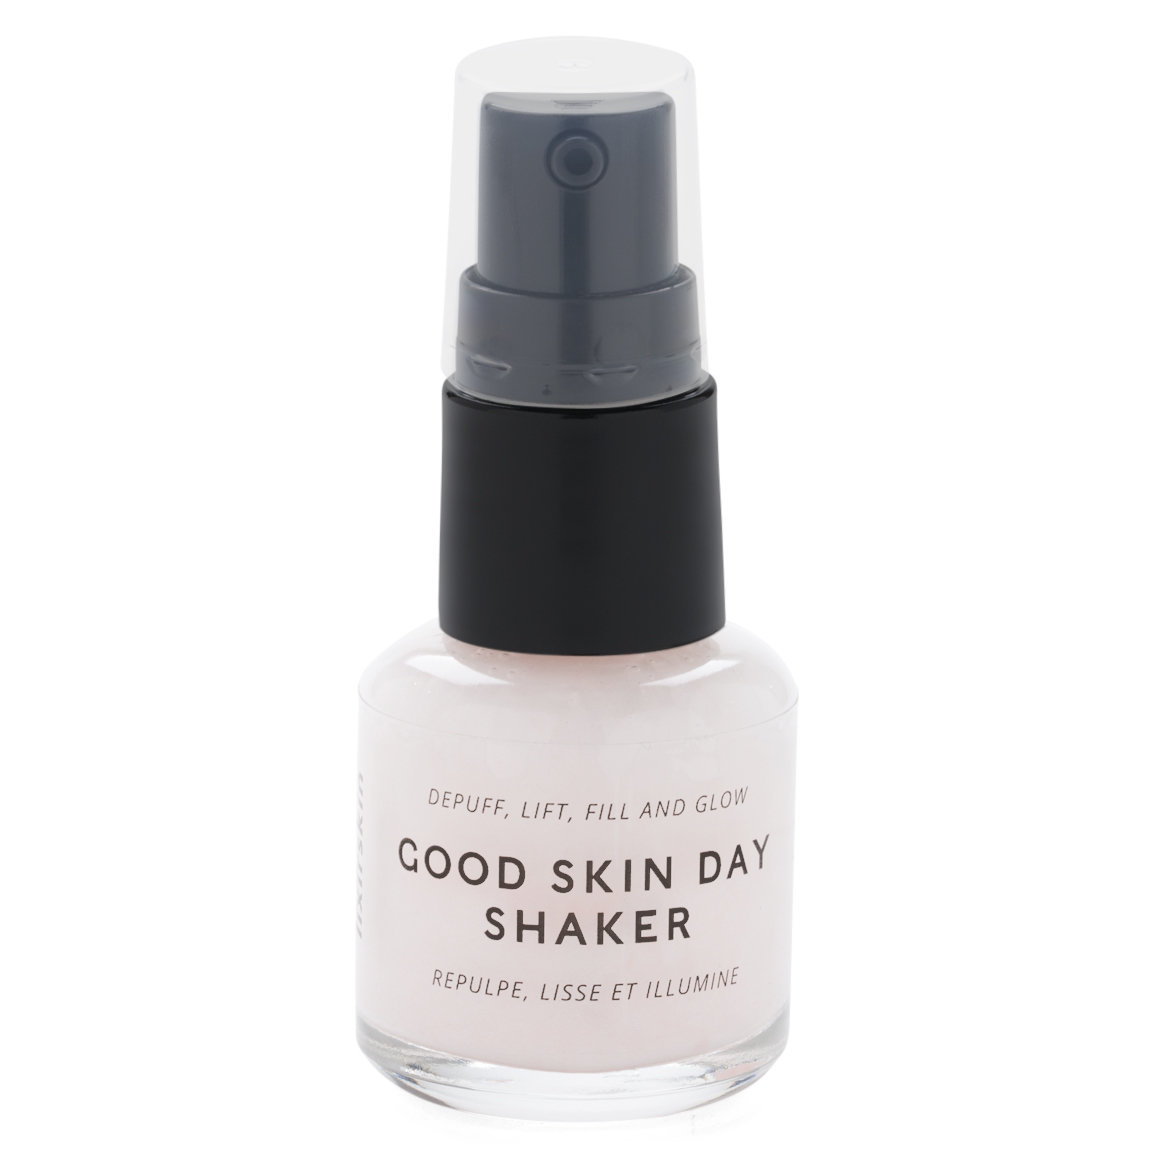 Lixirskin Good Skin Day Shaker product smear.